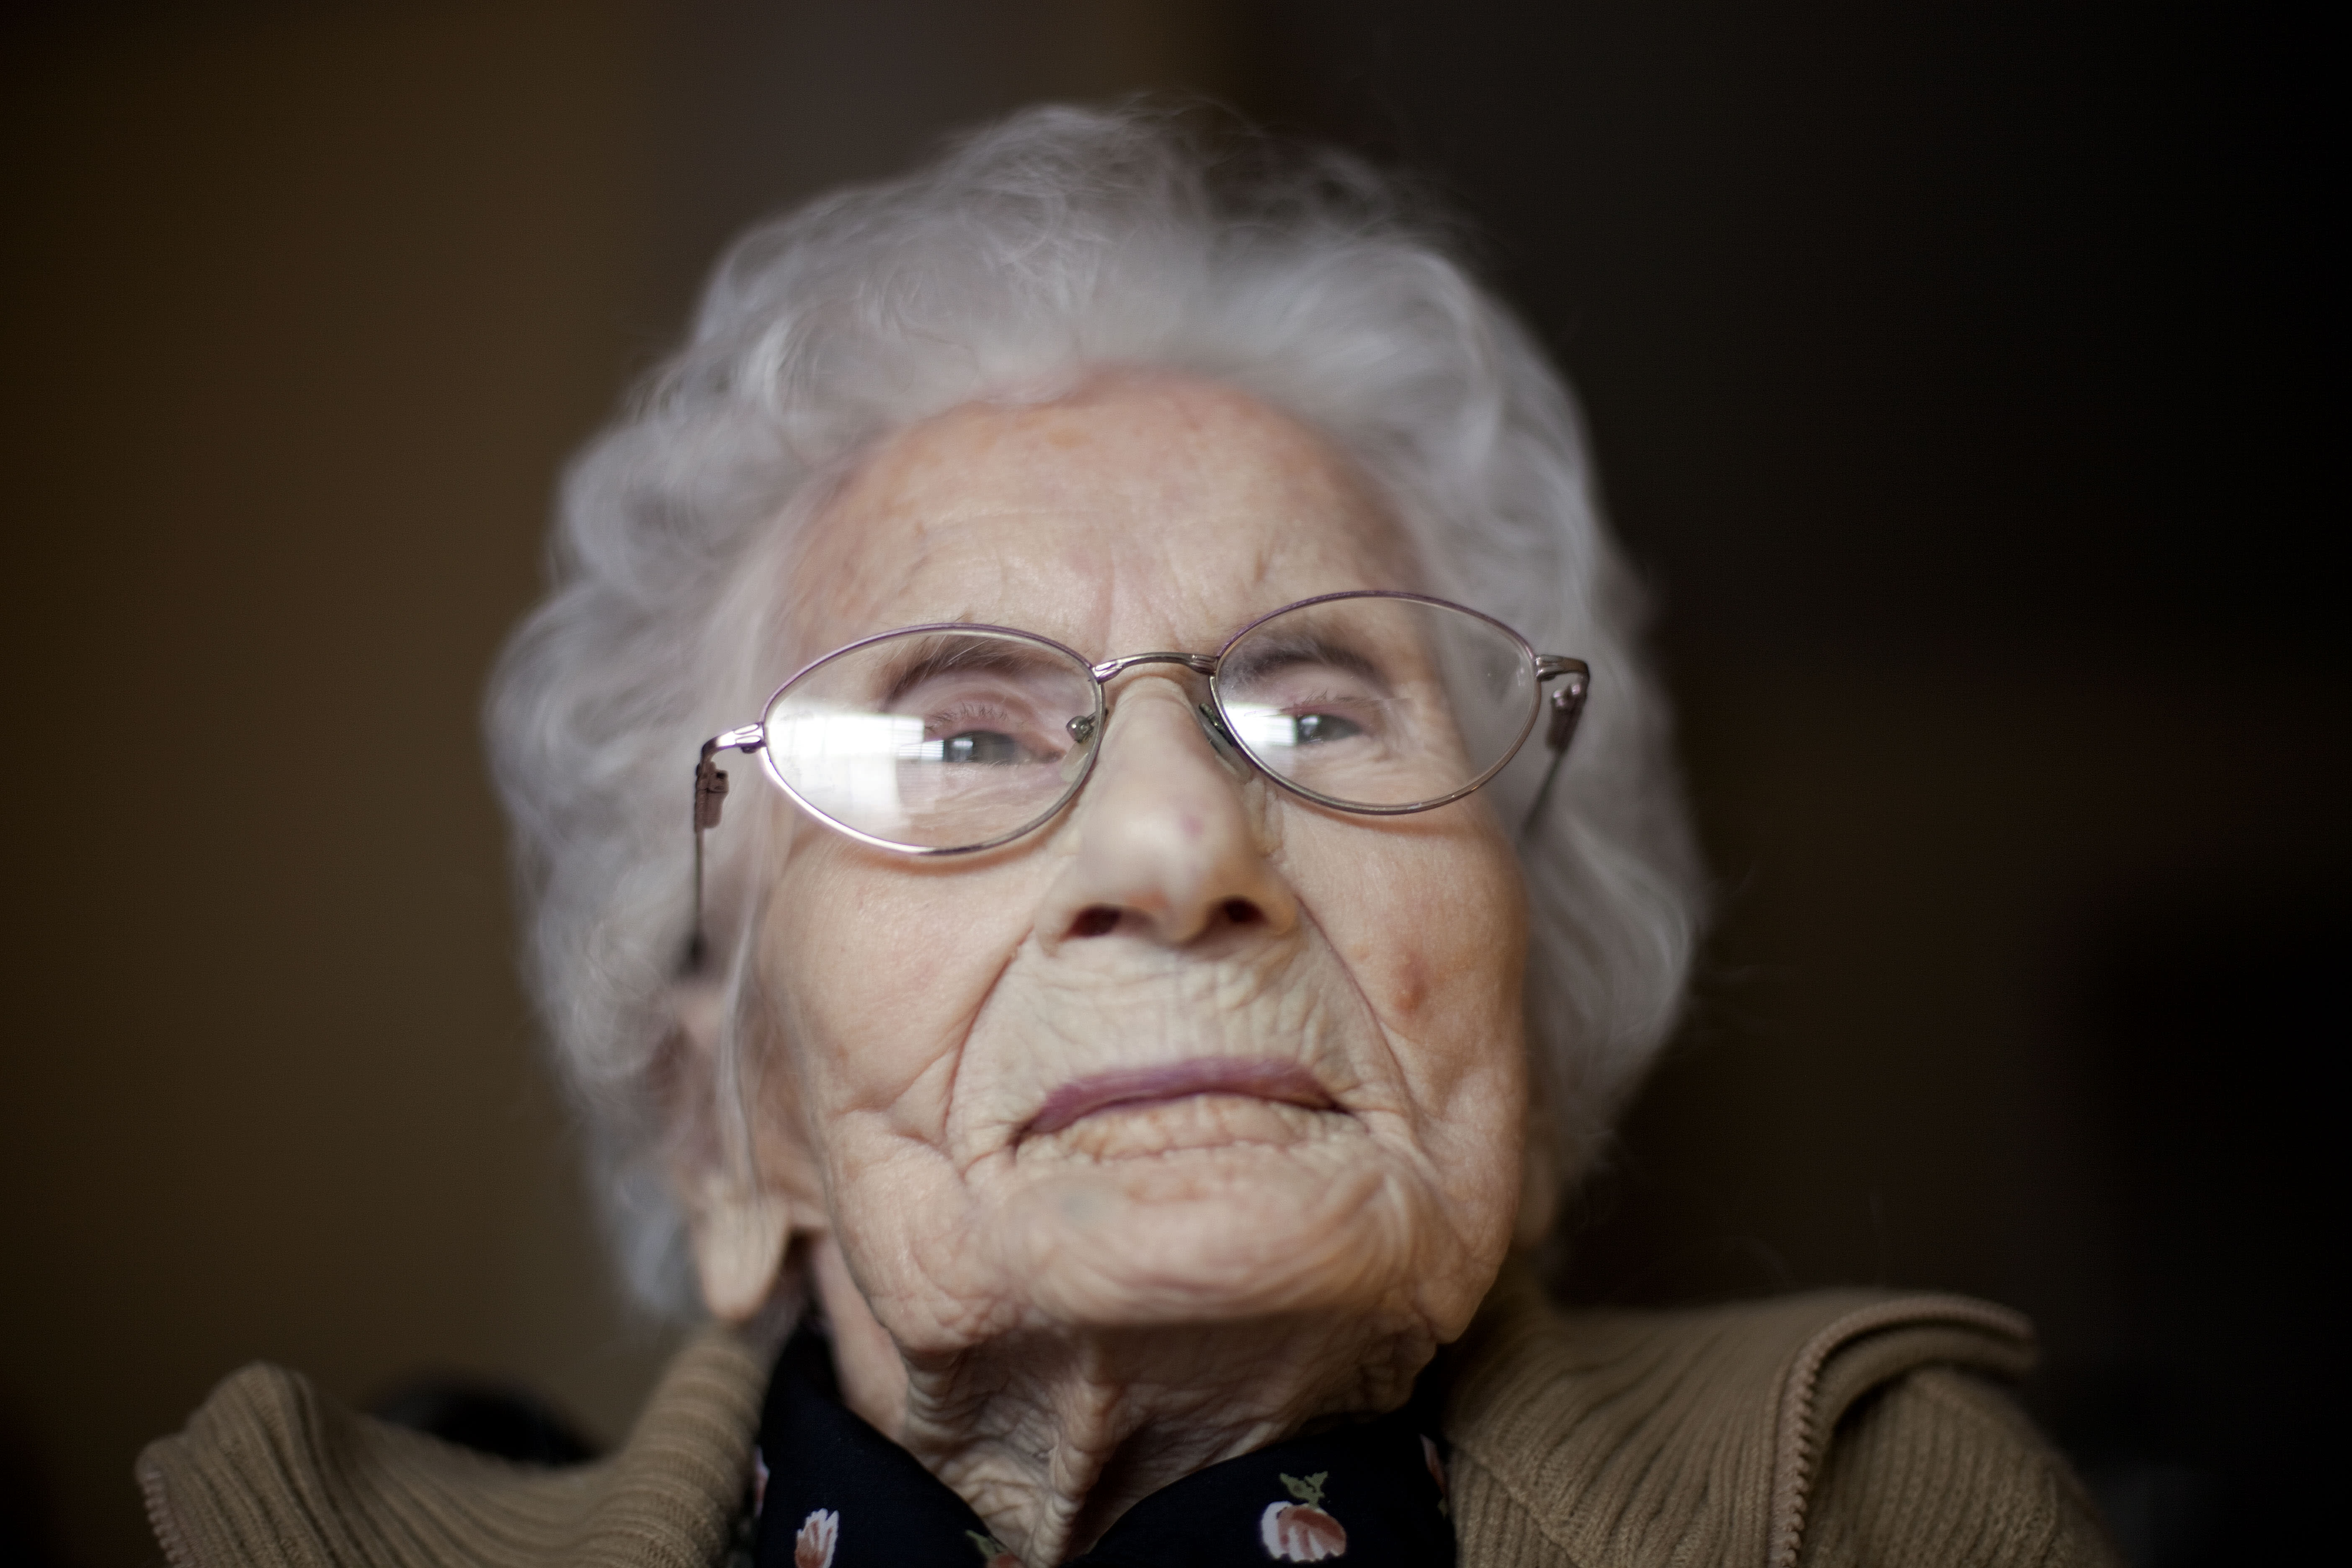 FILE - In this Feb. 1, 2011 file photo, Besse Cooper, sits in her room at a nursing home, in Monroe, Ga. Cooper, the woman who was listed as the world's oldest person has died Tuesday, Dec. 4, 2012 in a Georgia nursing home at age 116, according to her son Sidney Cooper. (AP Photo/David Goldman, File)